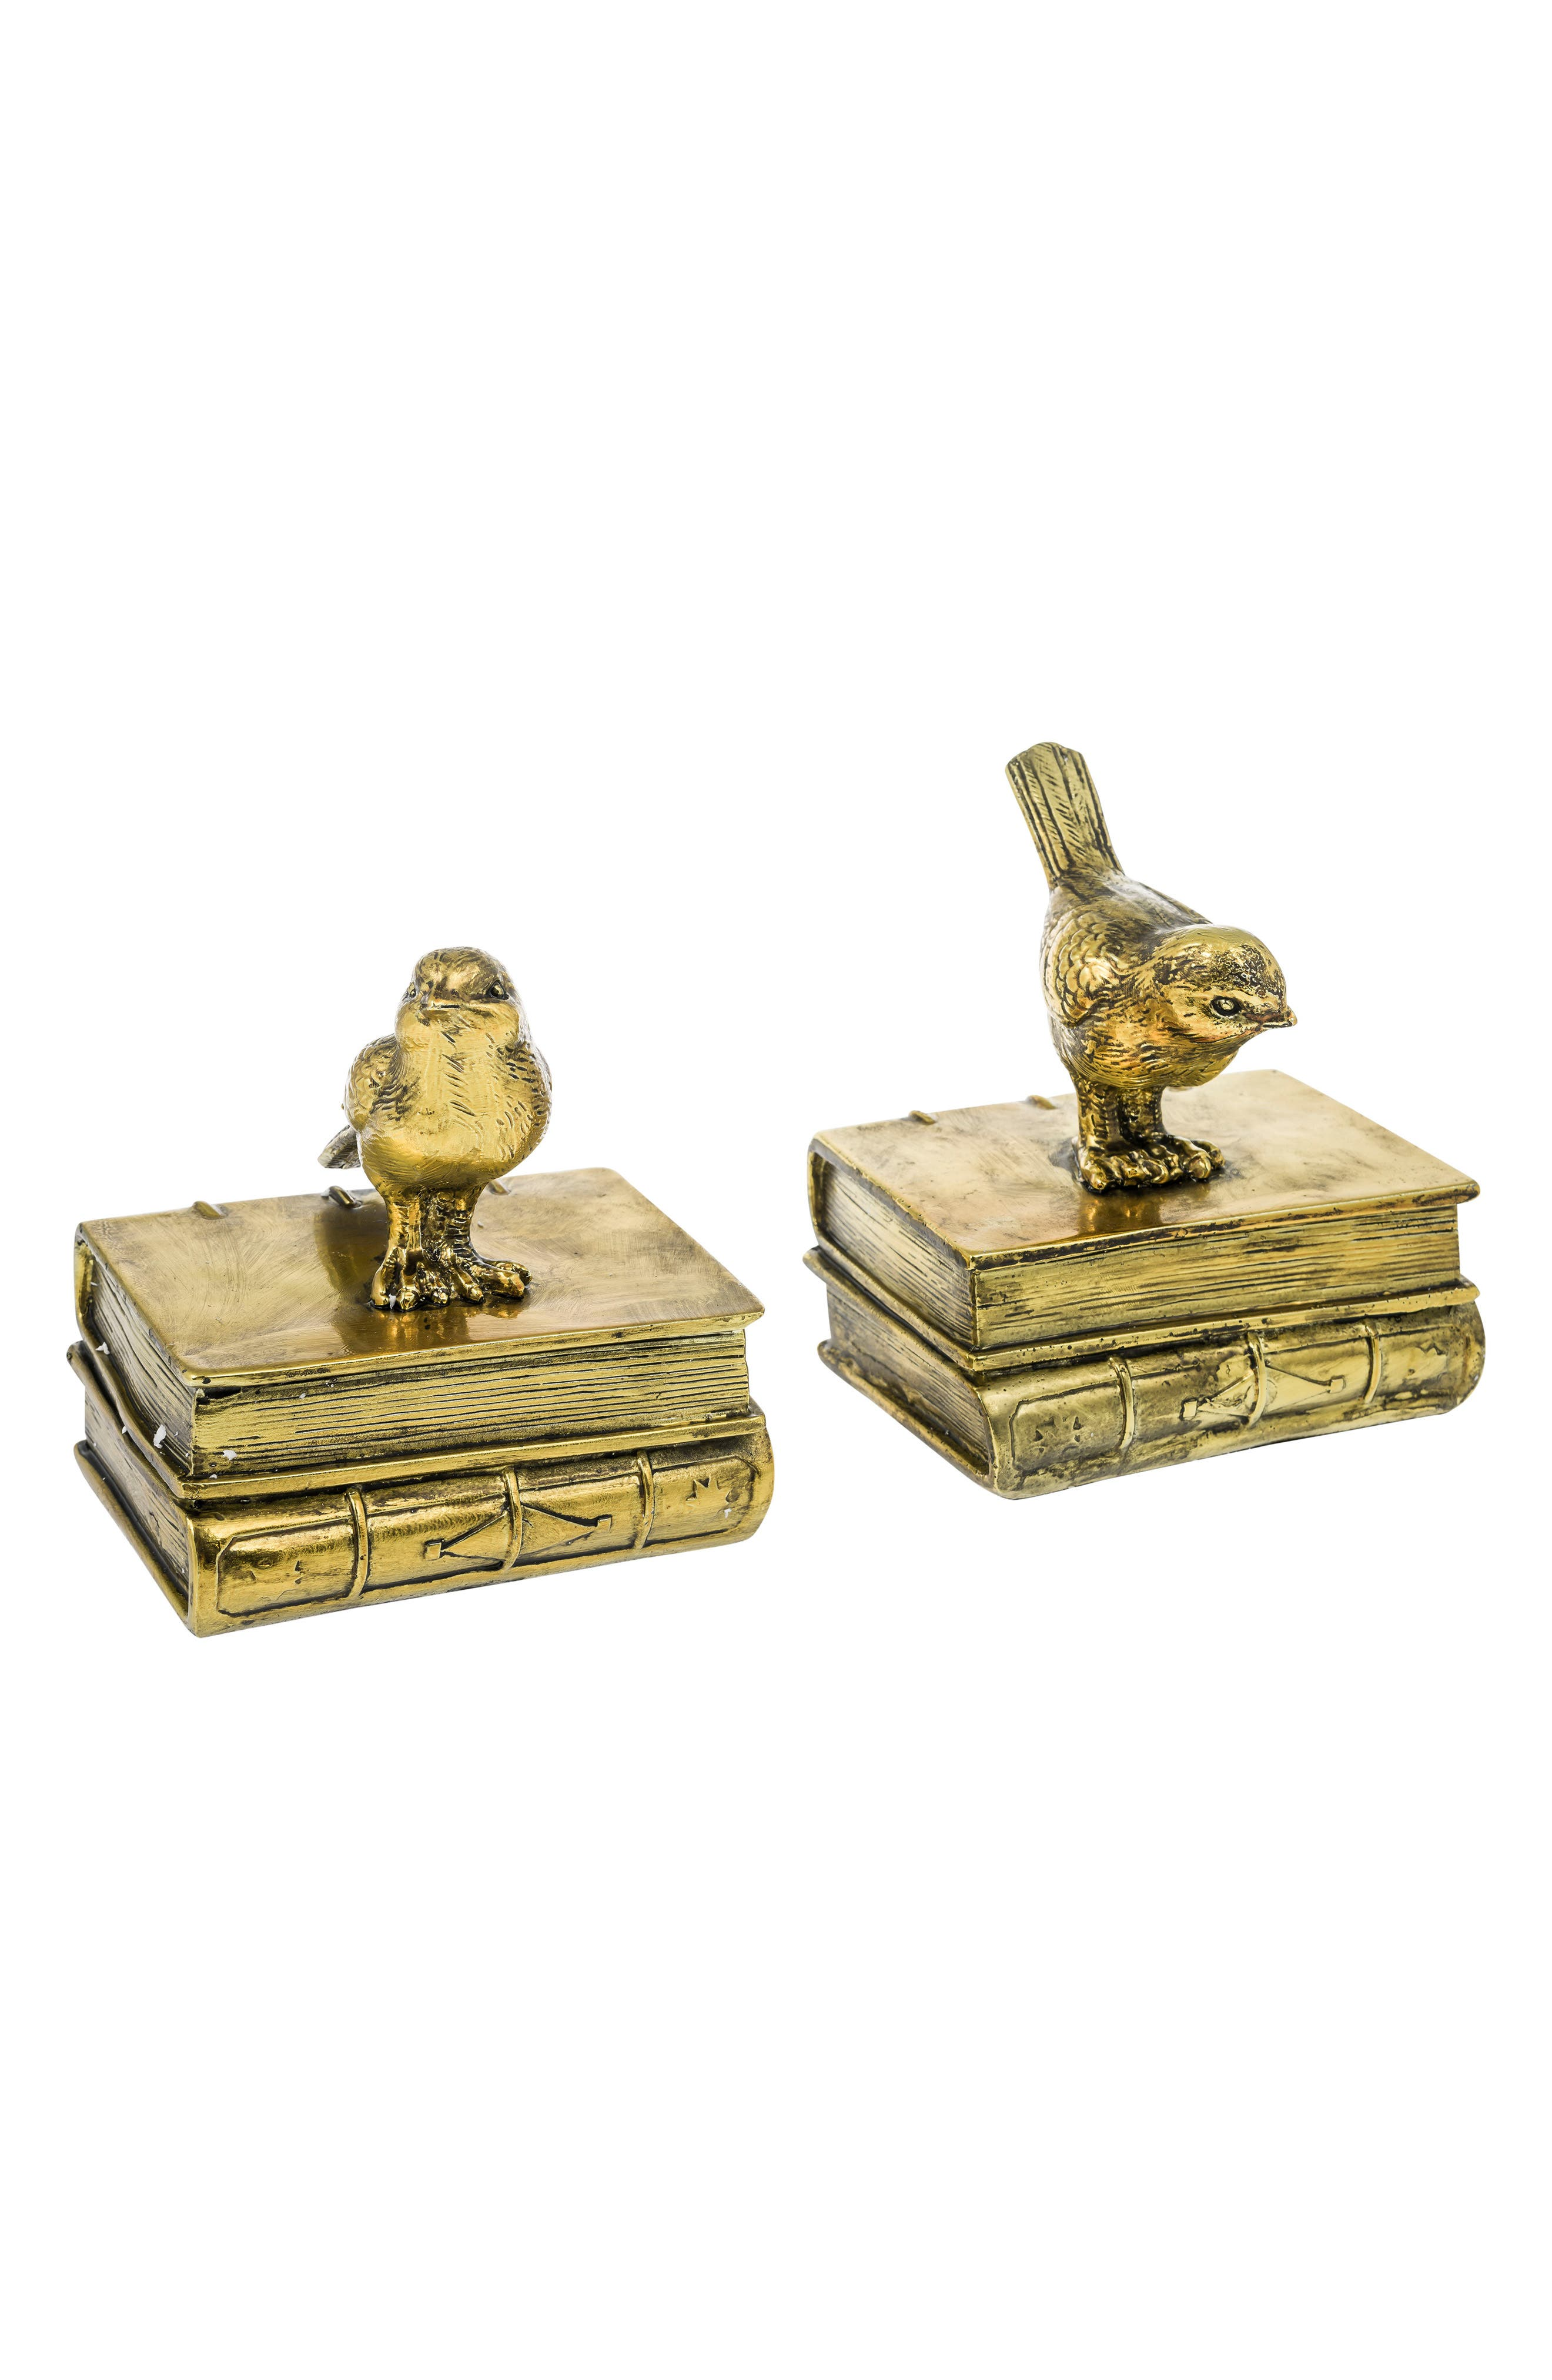 Alternate Image 1 Selected - Eightmood Deforest Set of 2 Bookends